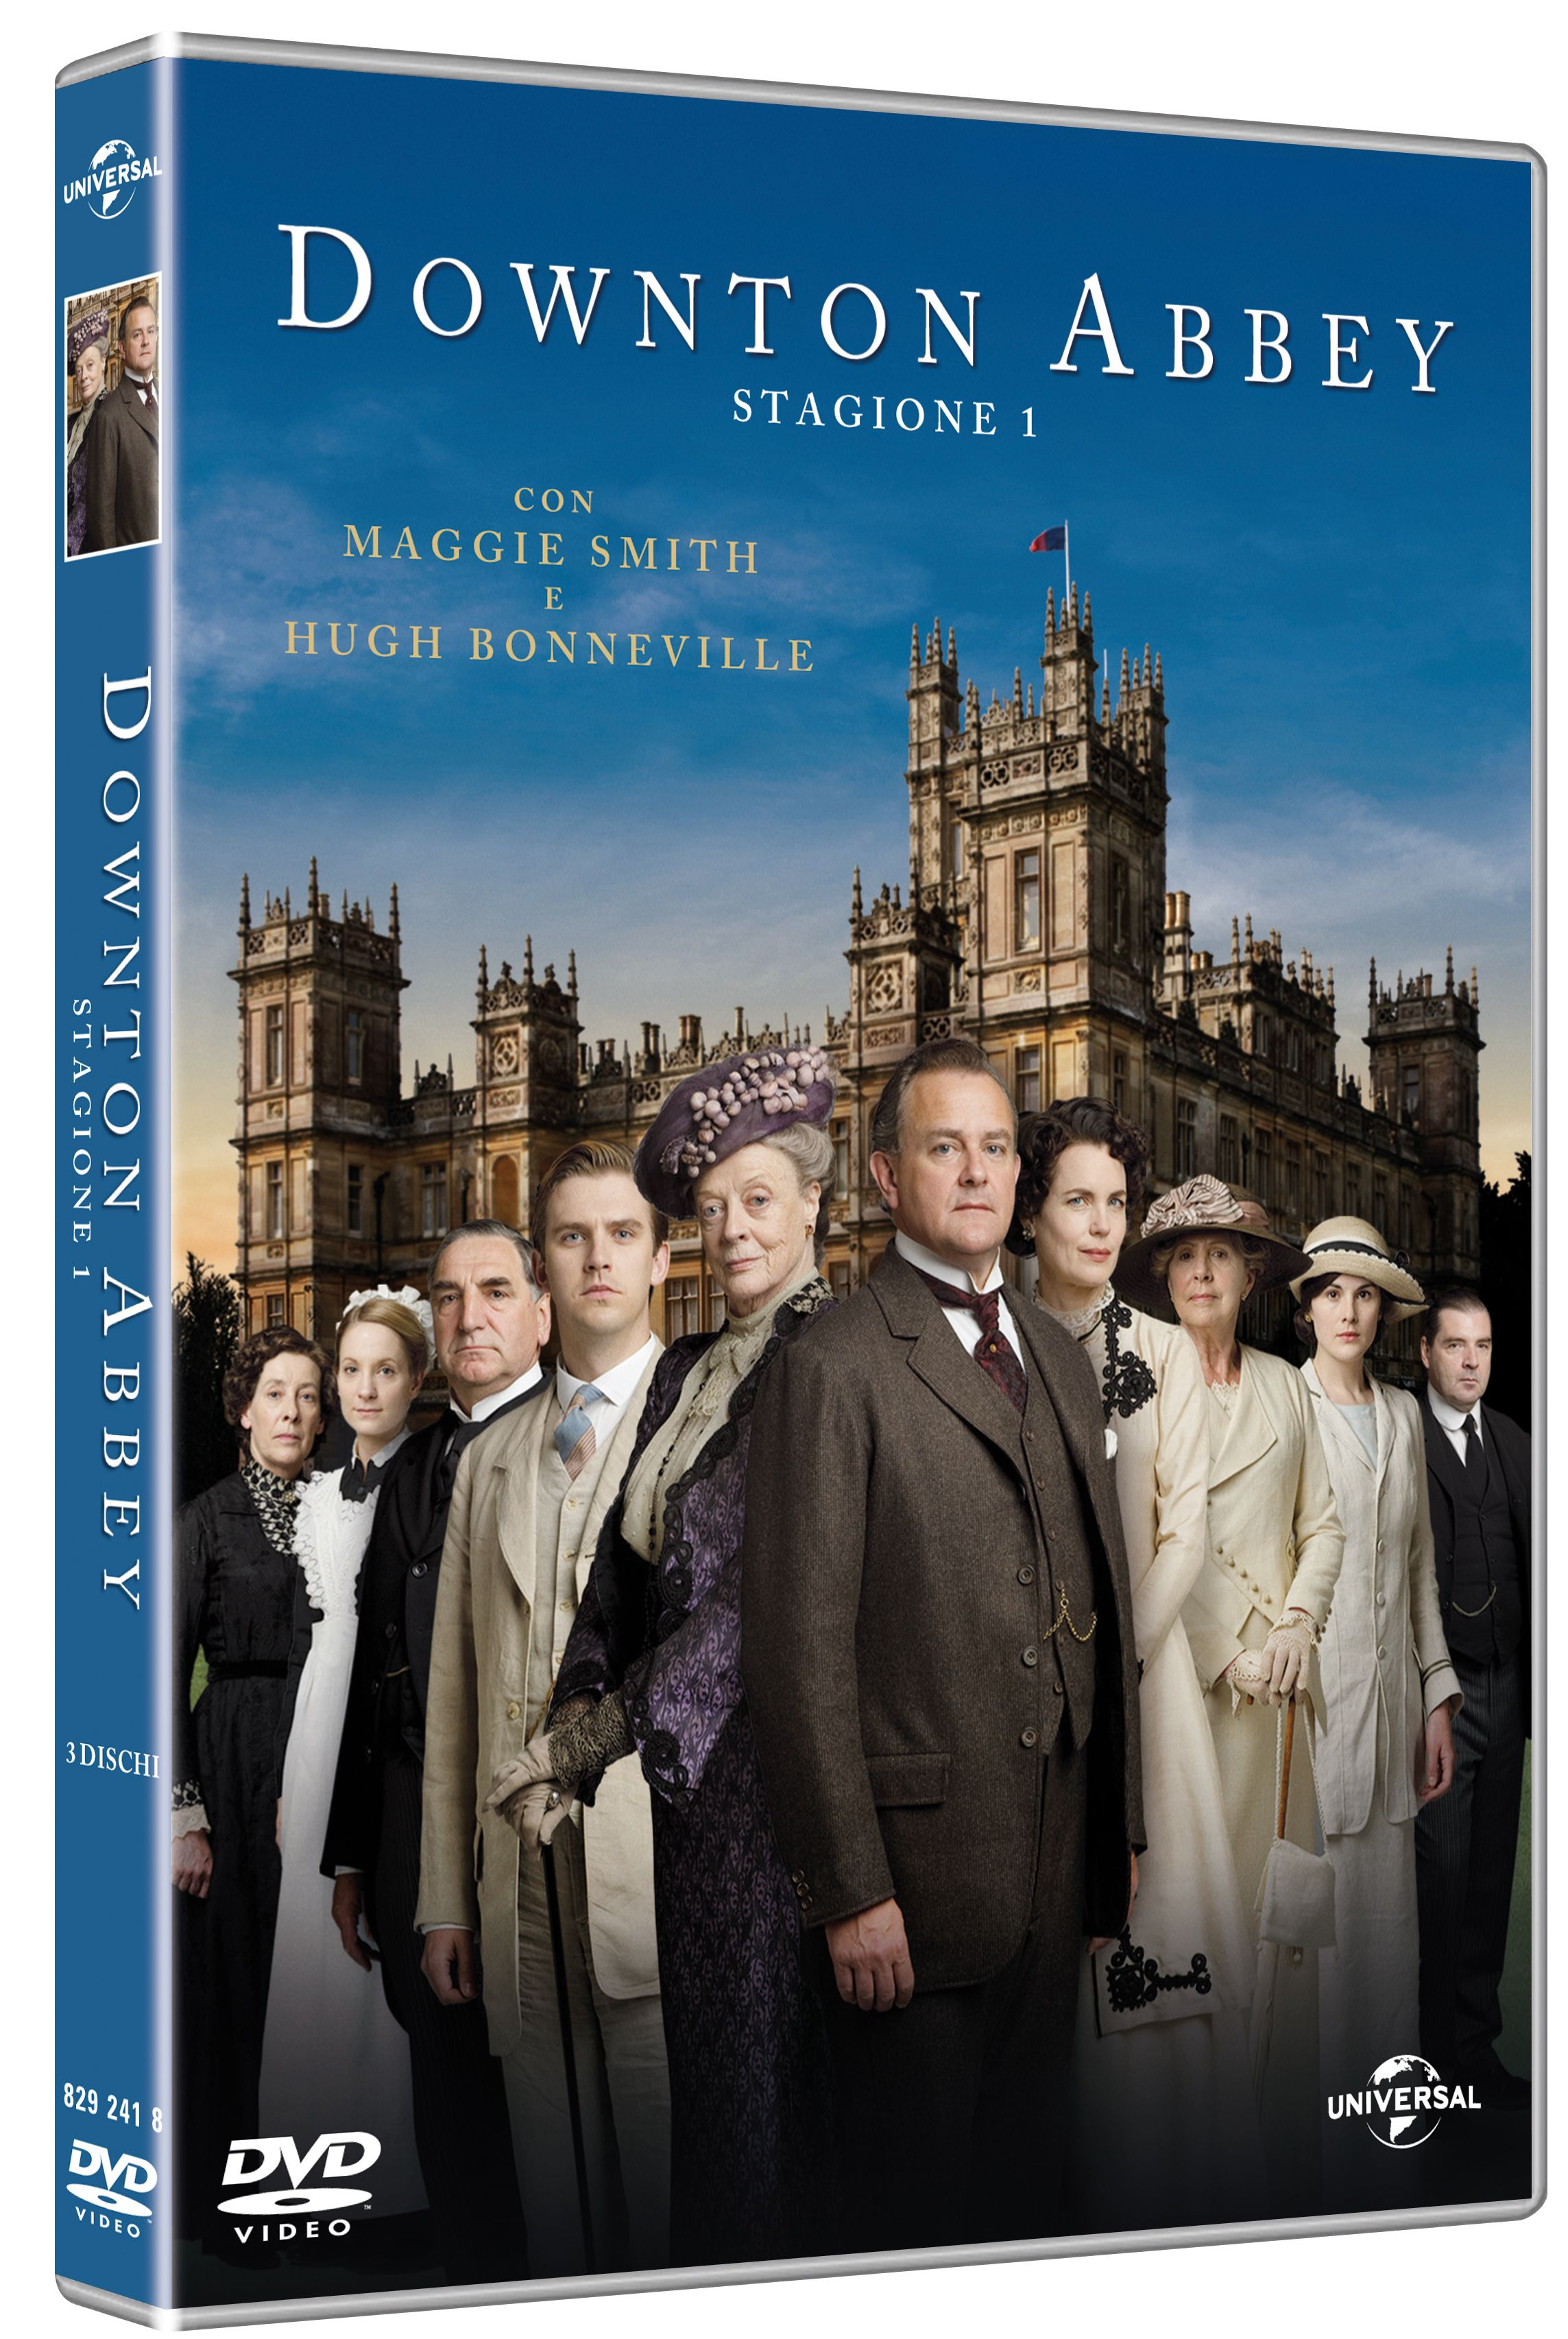 Downton Abbey stagione 1 dvd